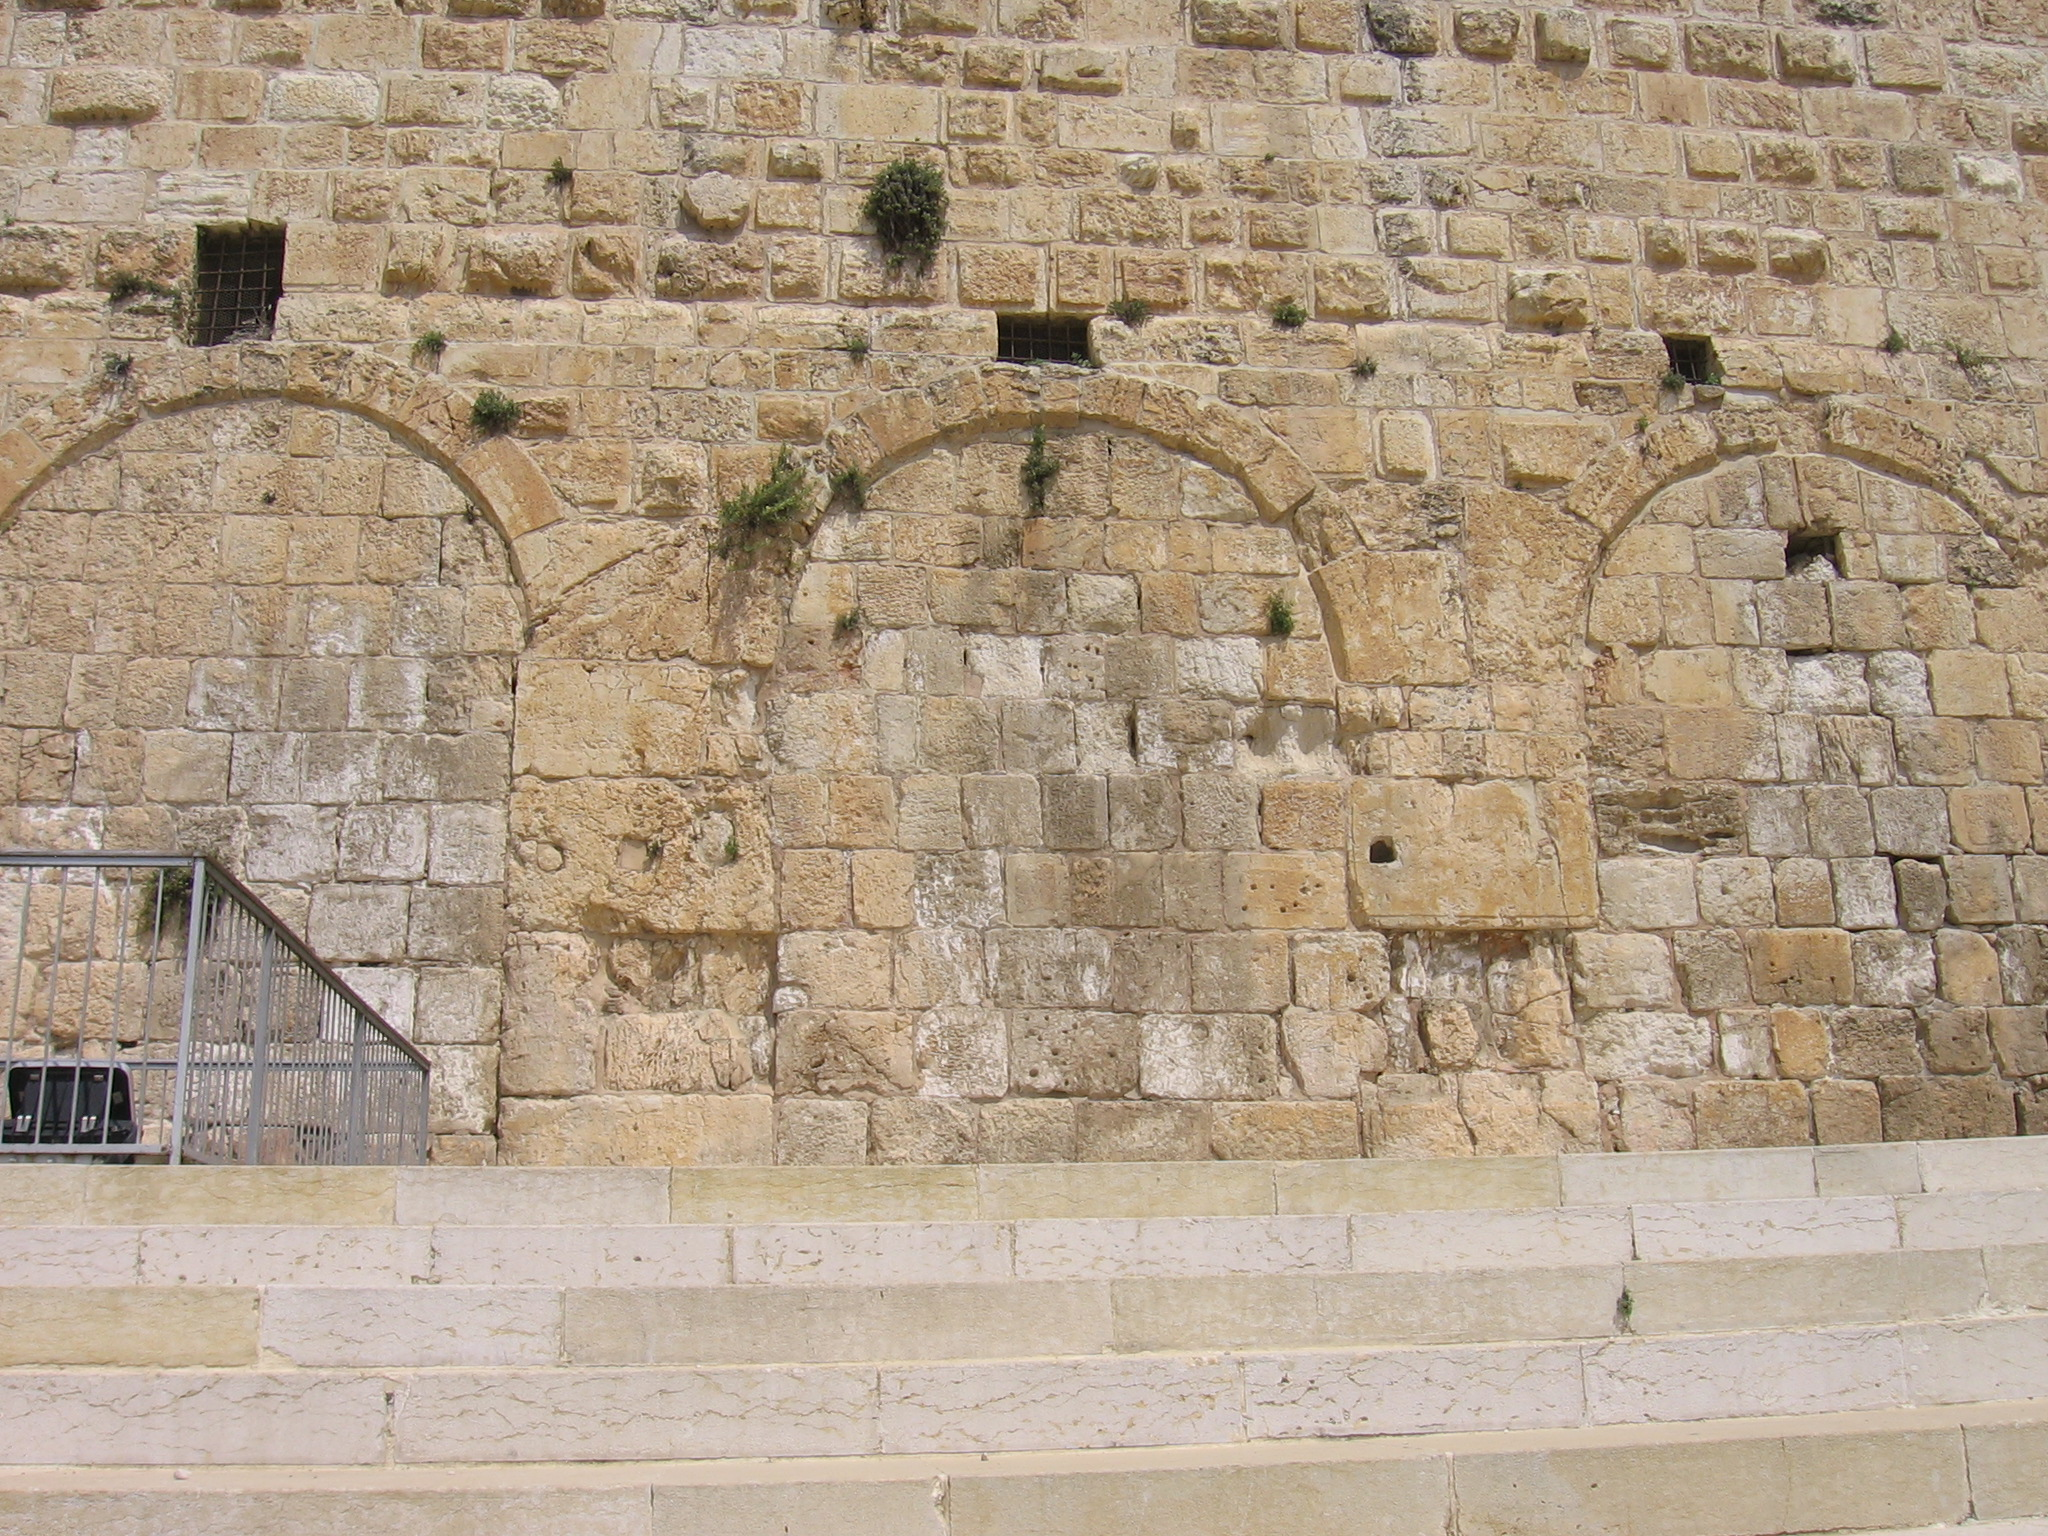 iron gate jewish singles The new gate was the name used by the but because the jewish demolition charge intended for the iron gate was detonated by a stray artillery shell that set the.